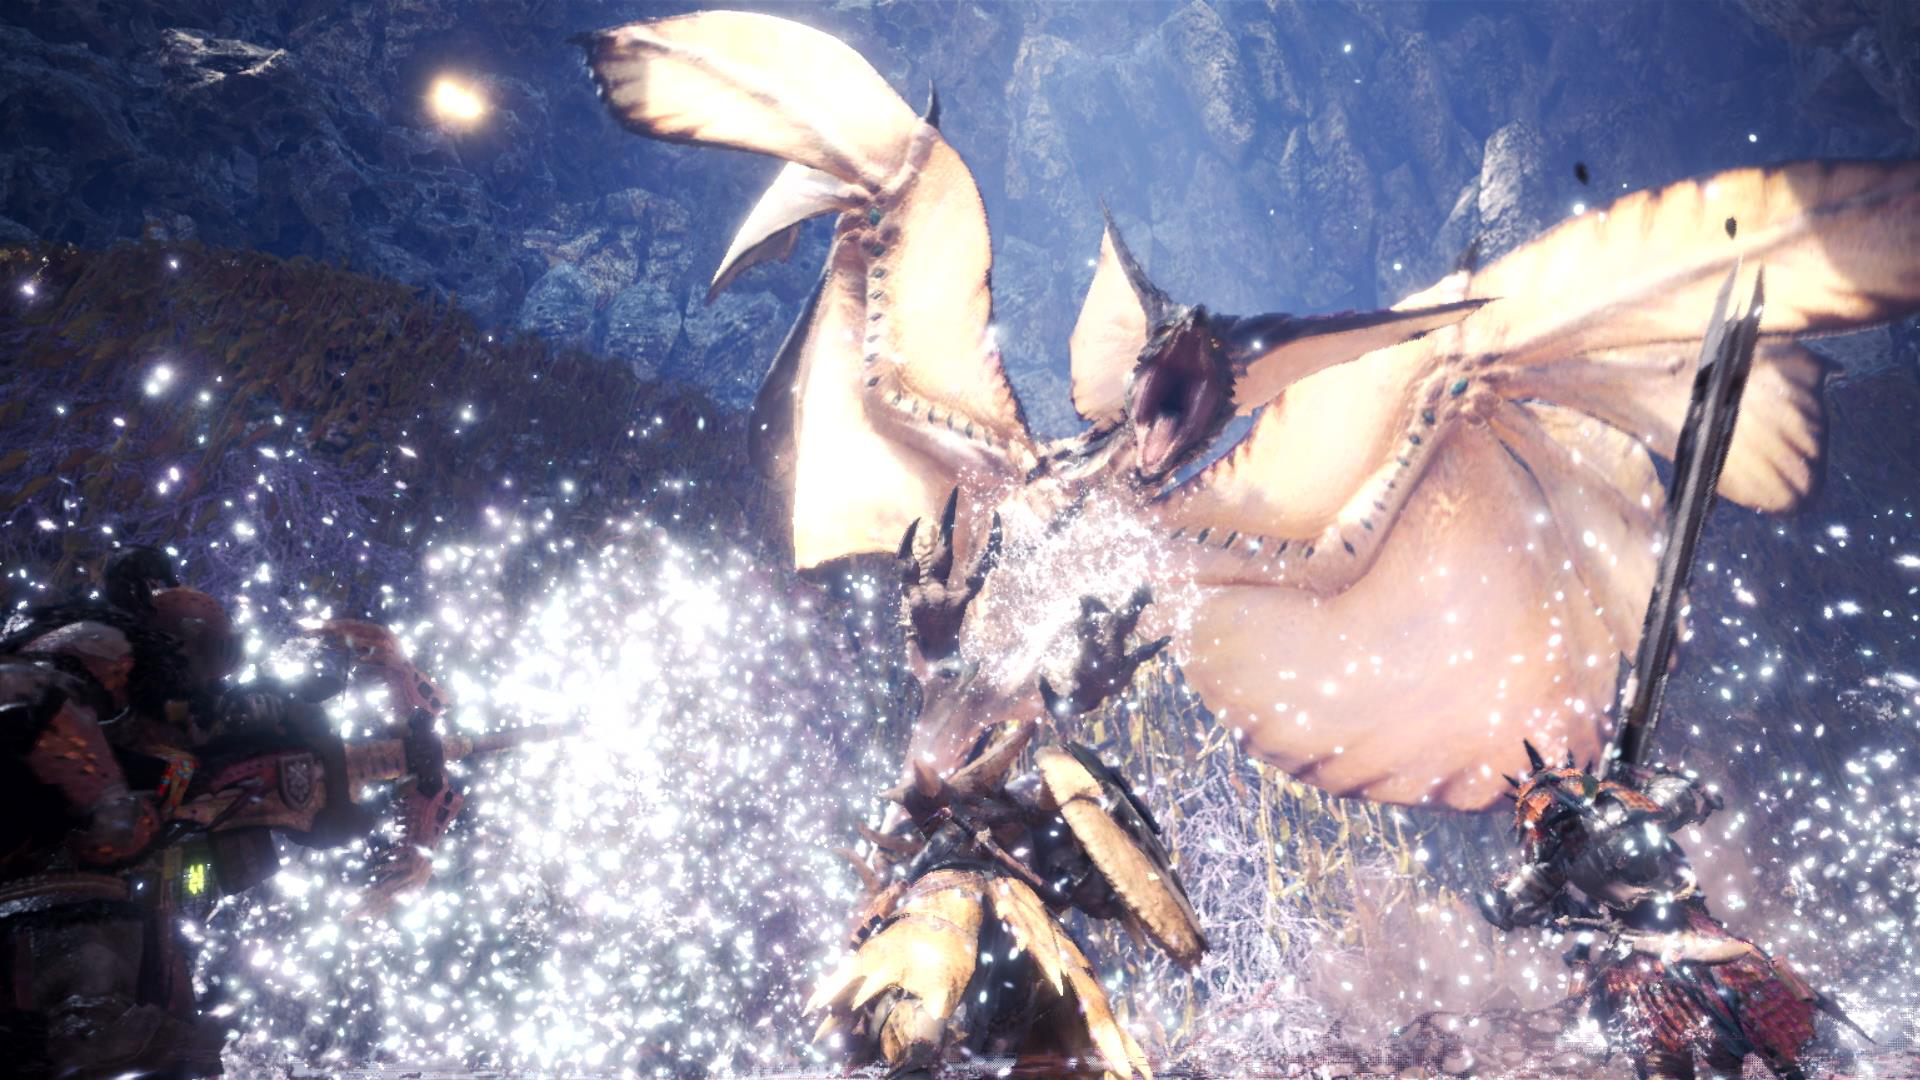 AMD drivers – Monster Hunter: World up to 6% faster with